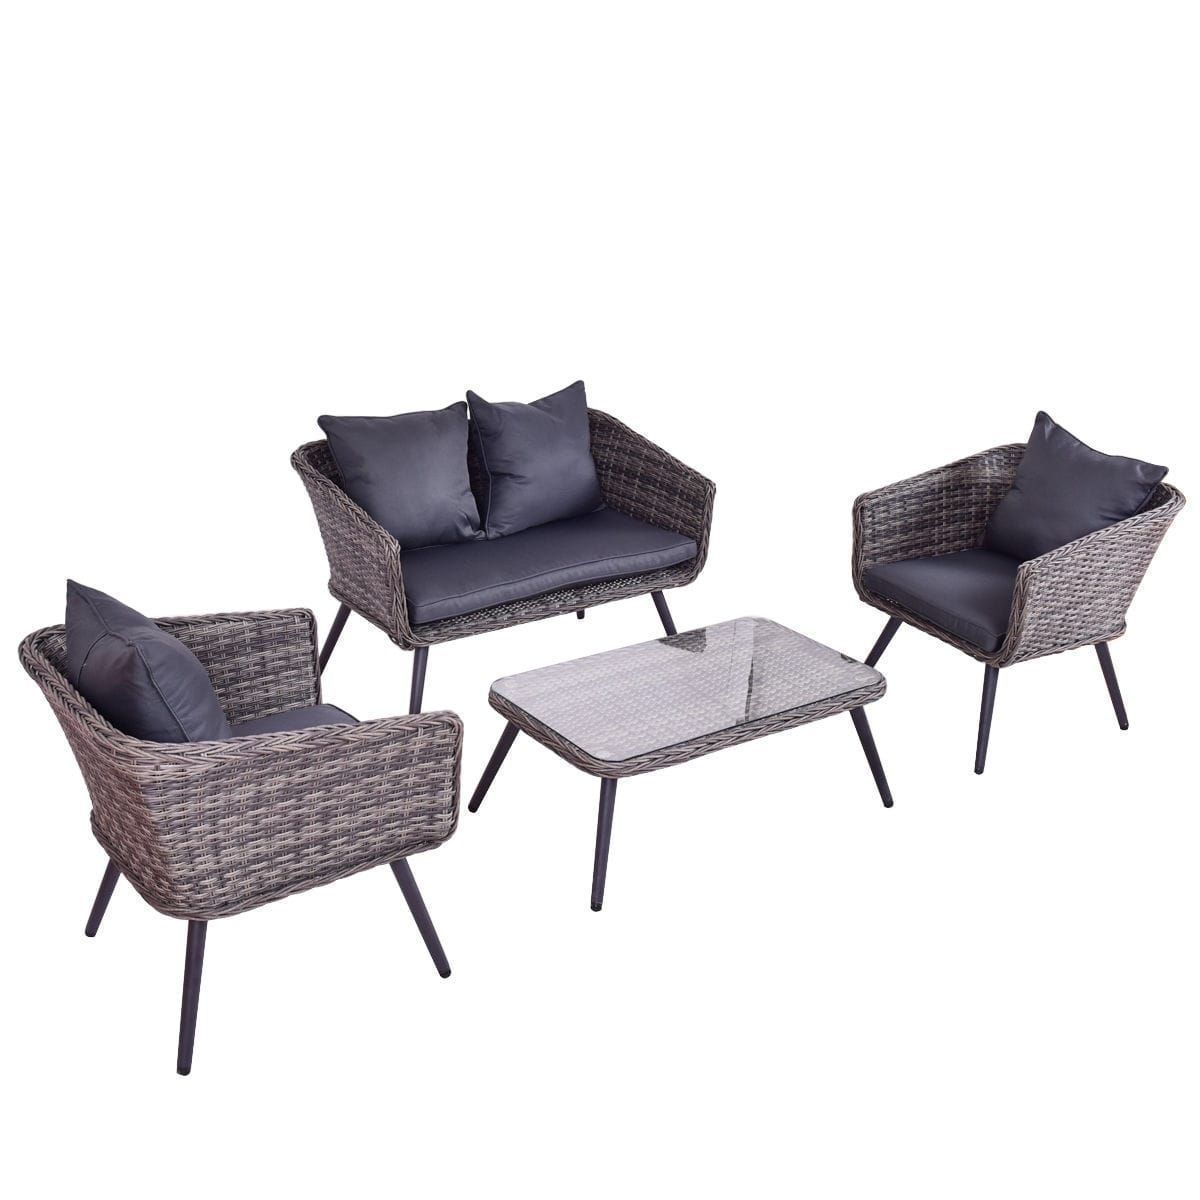 Costway pcs grey rattan wicker furniture set loveseat sofa